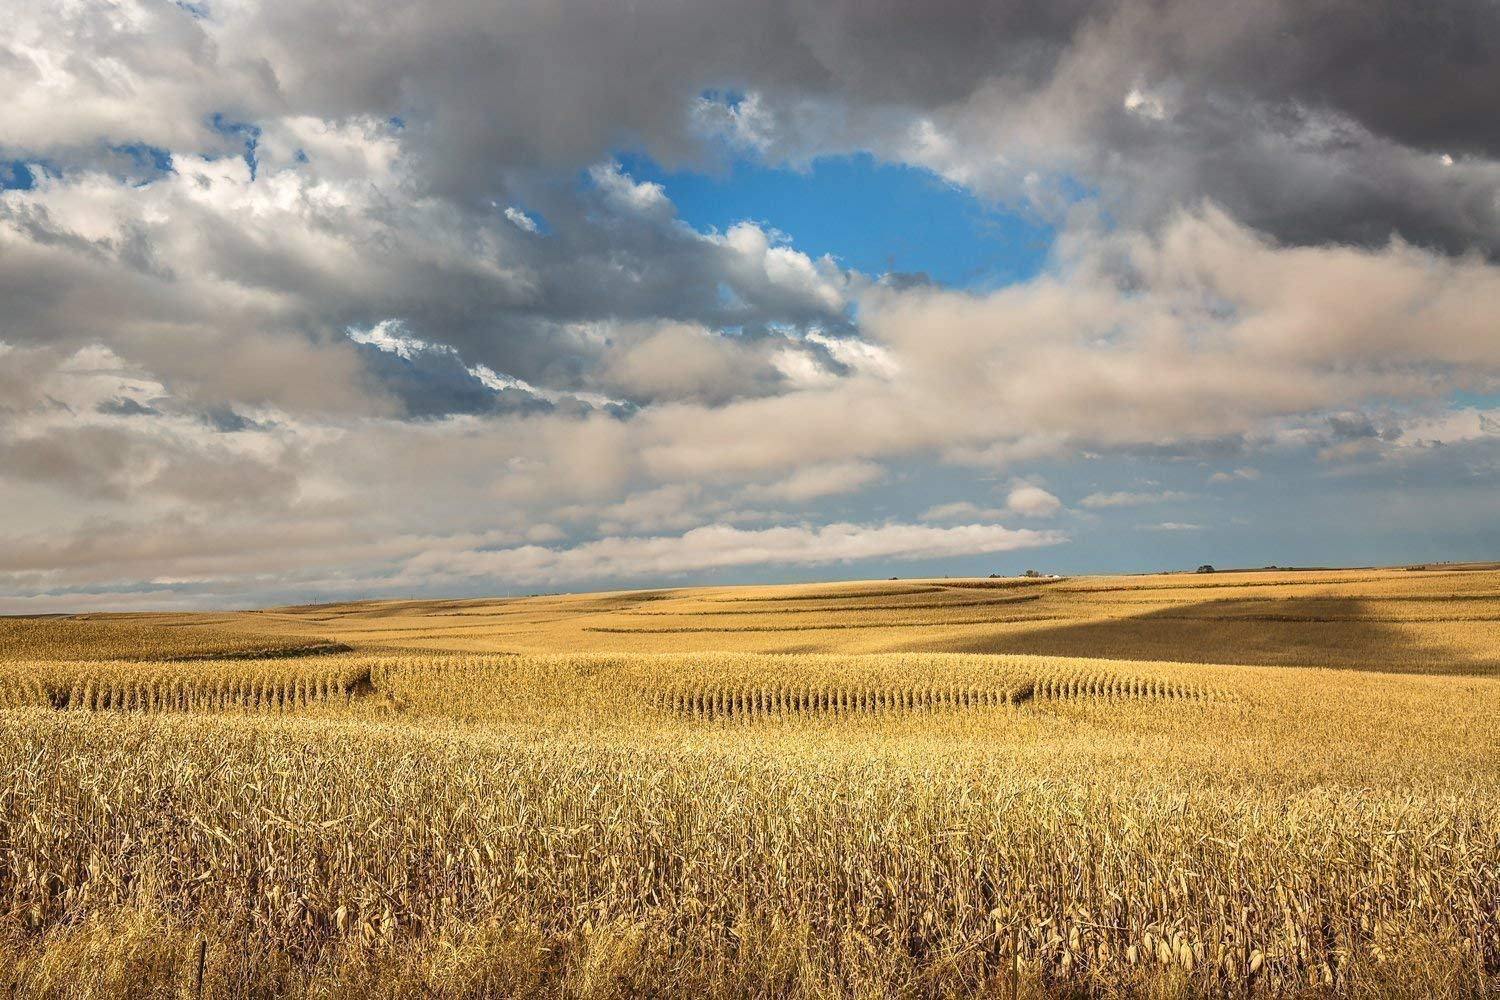 Iowa Landscape Photography Art Print - Picture of Terraced Corn Fields Under Dreamy Sky in Fall Rural Farm Decor Artwork for Home Decoration 5x7 to 30x45